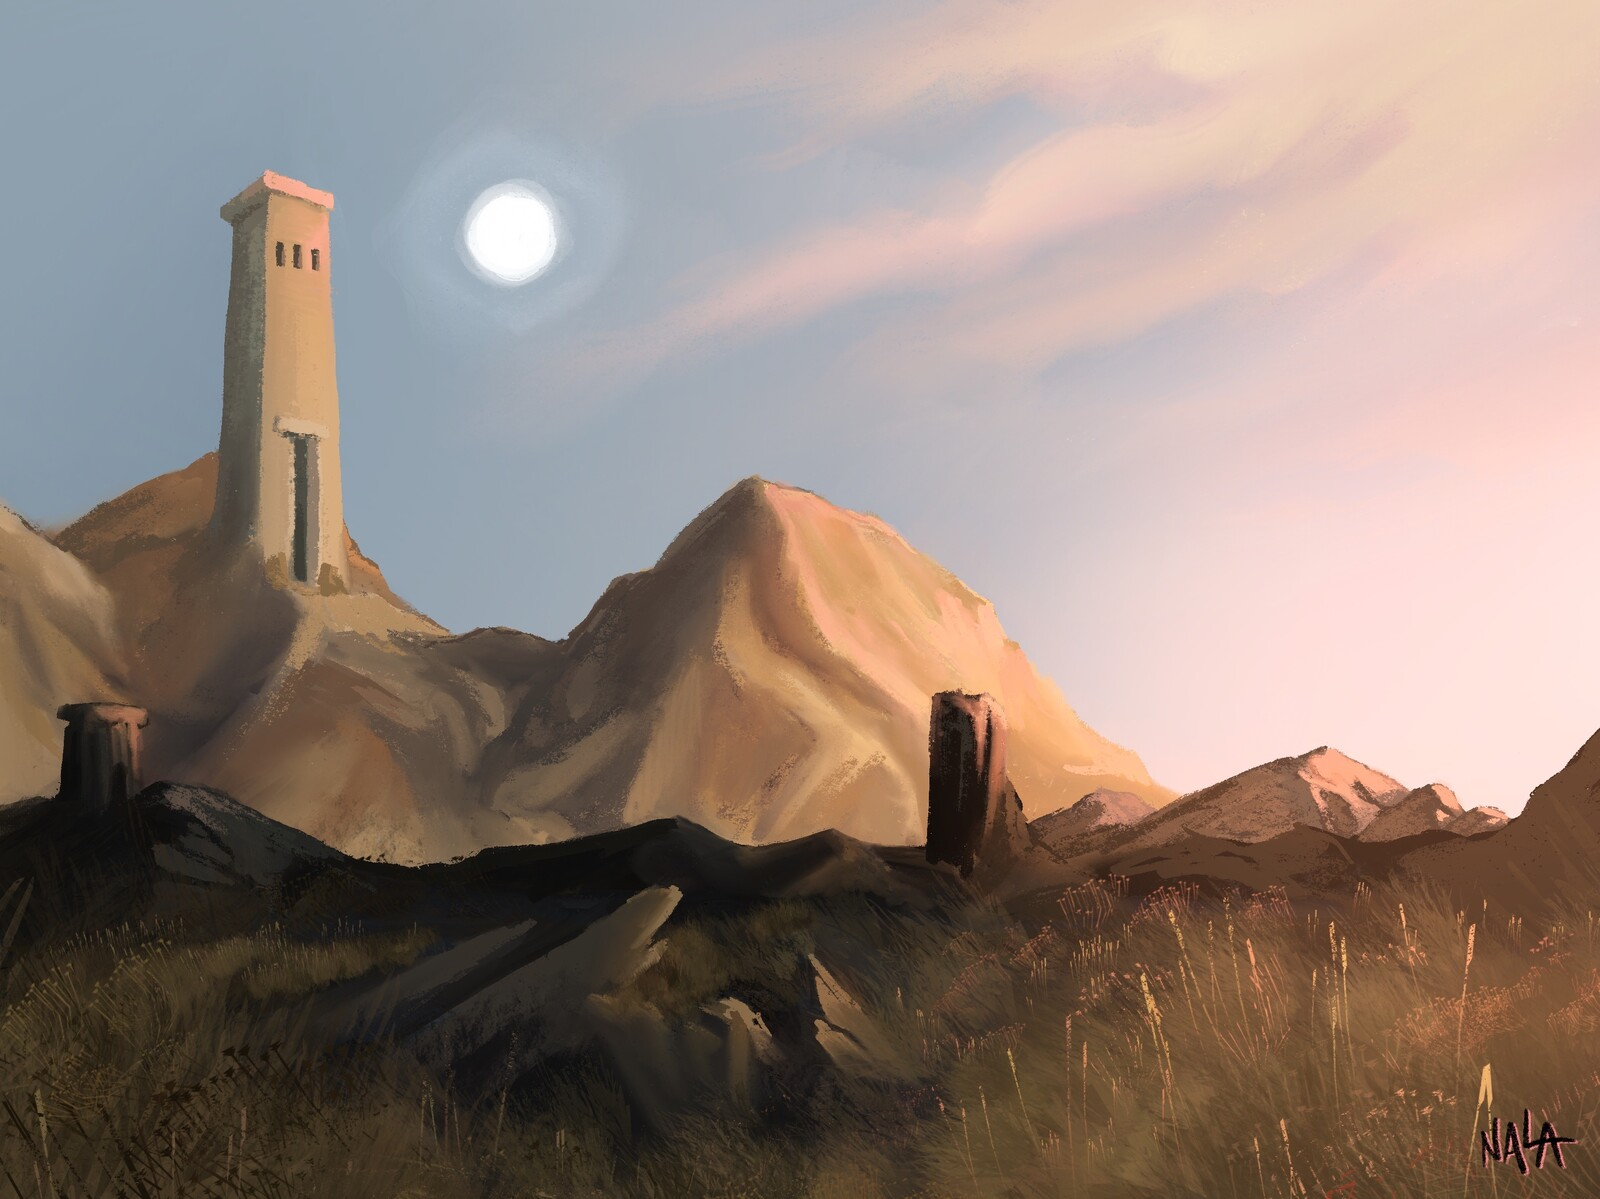 Environment Concept - The Temple of the Sun